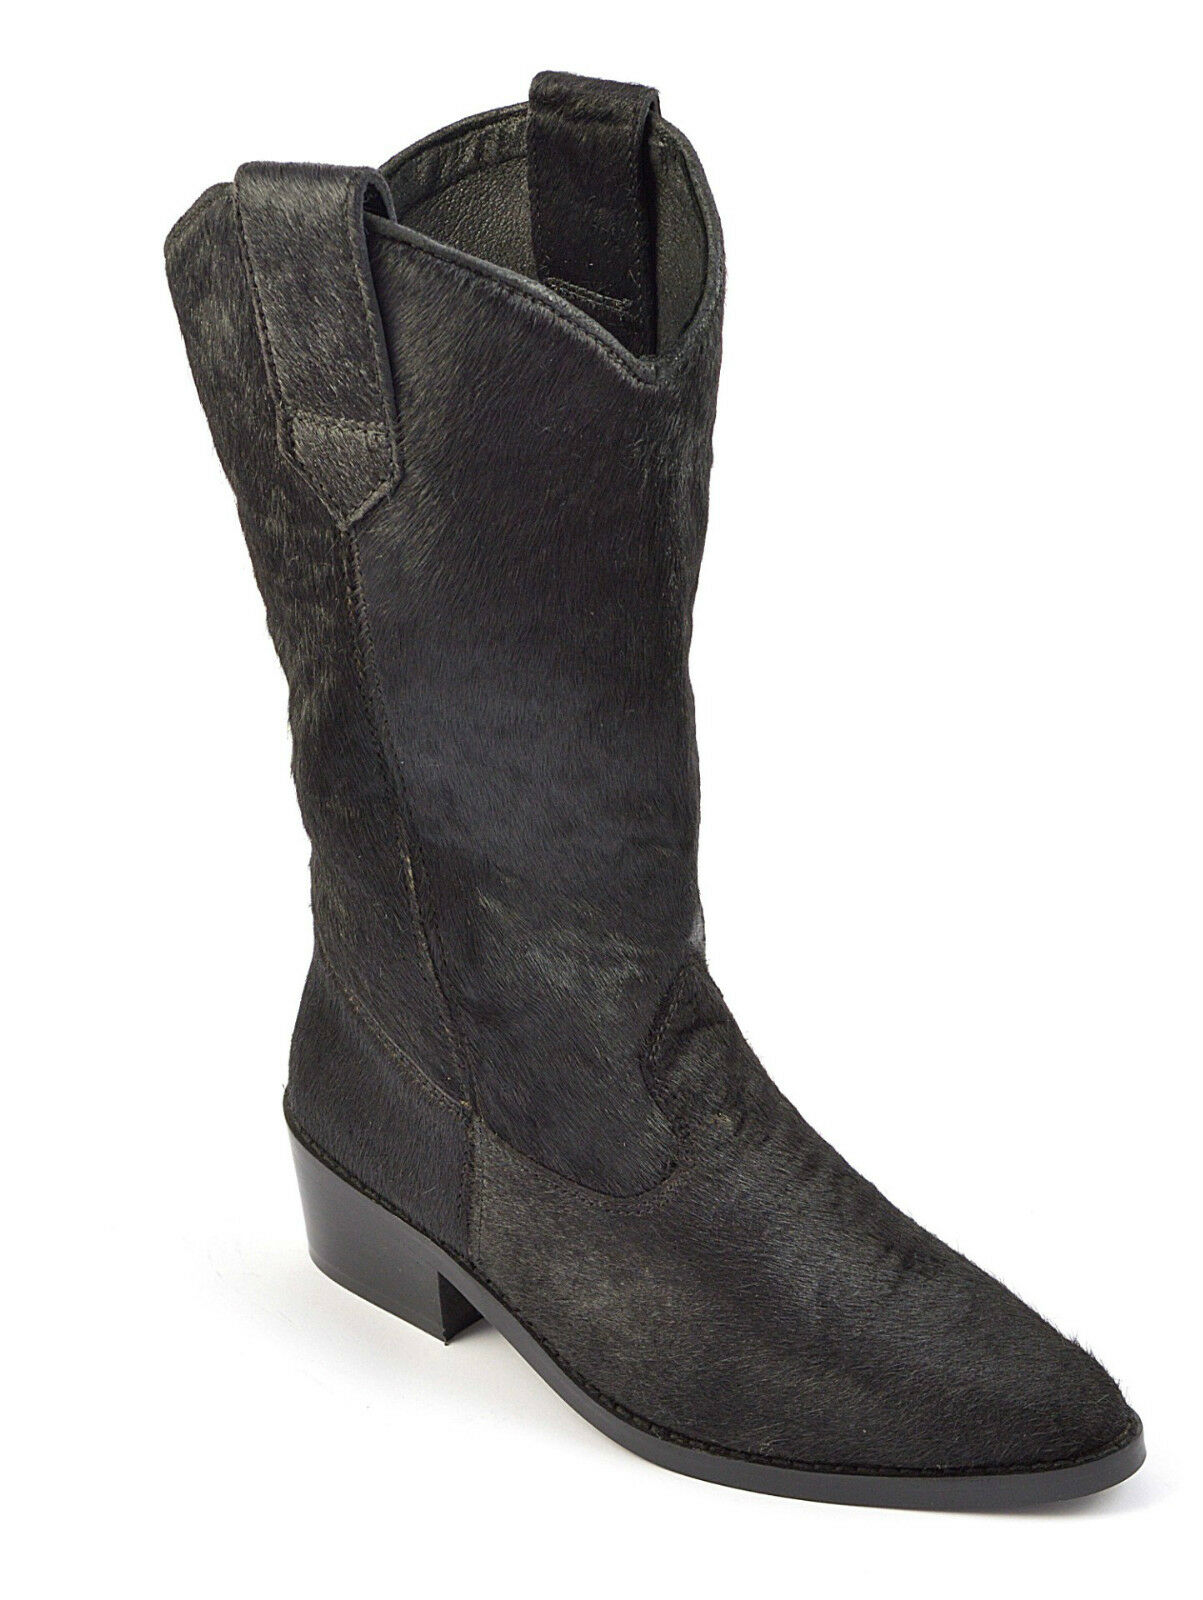 Womens Ladies Cowboy Boots Western Black Riding Calf Hair Leather Heel Shoe Size